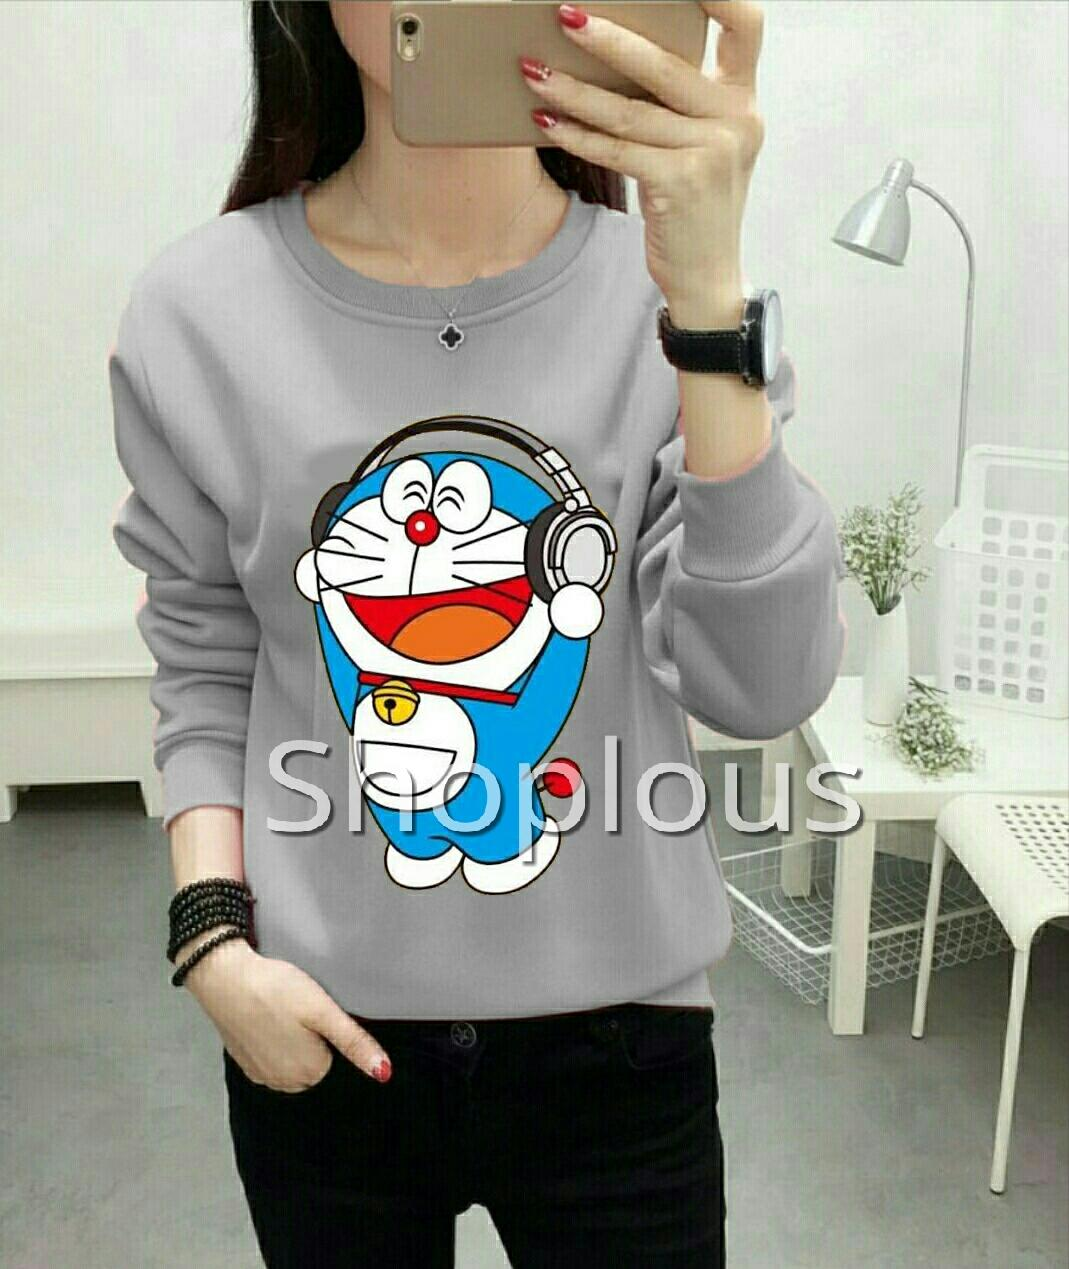 Shoplous Sweater Droaemon High Quality / Doraemon/ Sweater doraemon/ Sweater unik / Kaos Doraemon/ Koas murah / sweater Murah / Sweater berkualitas